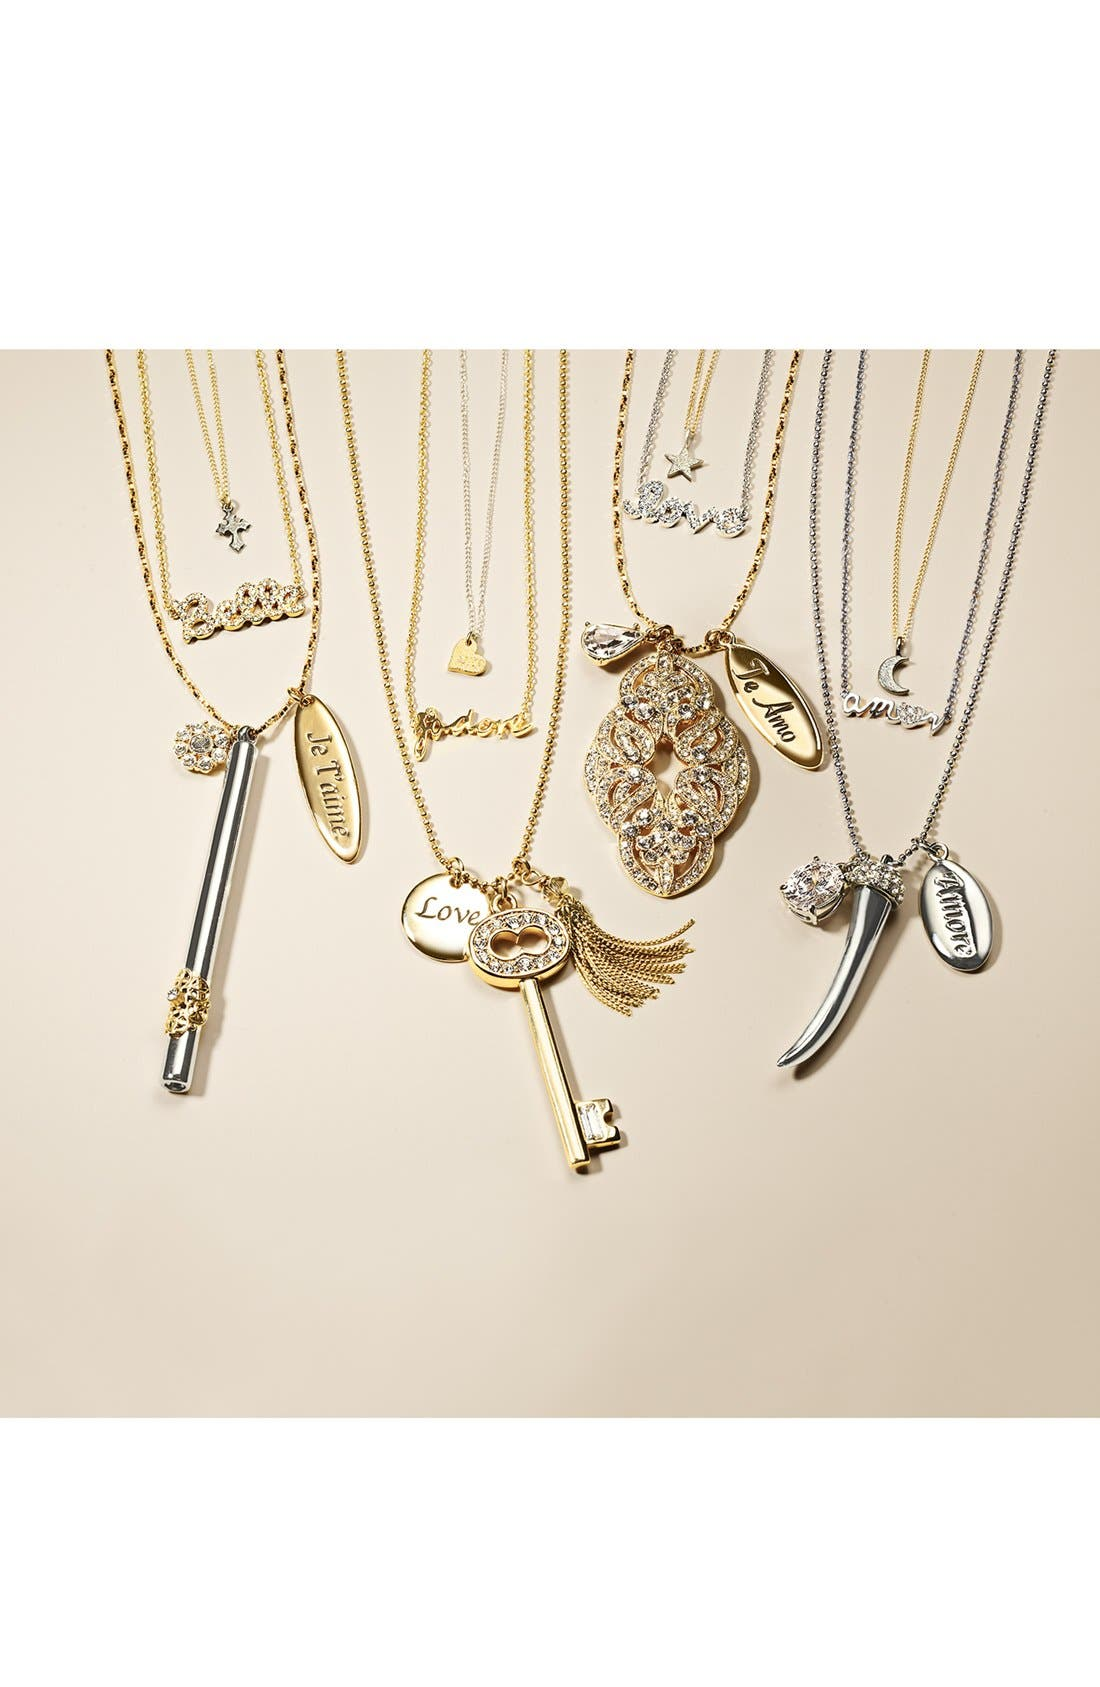 Alternate Image 3  - Nordstrom 'Love Languages' Long Charm Necklace